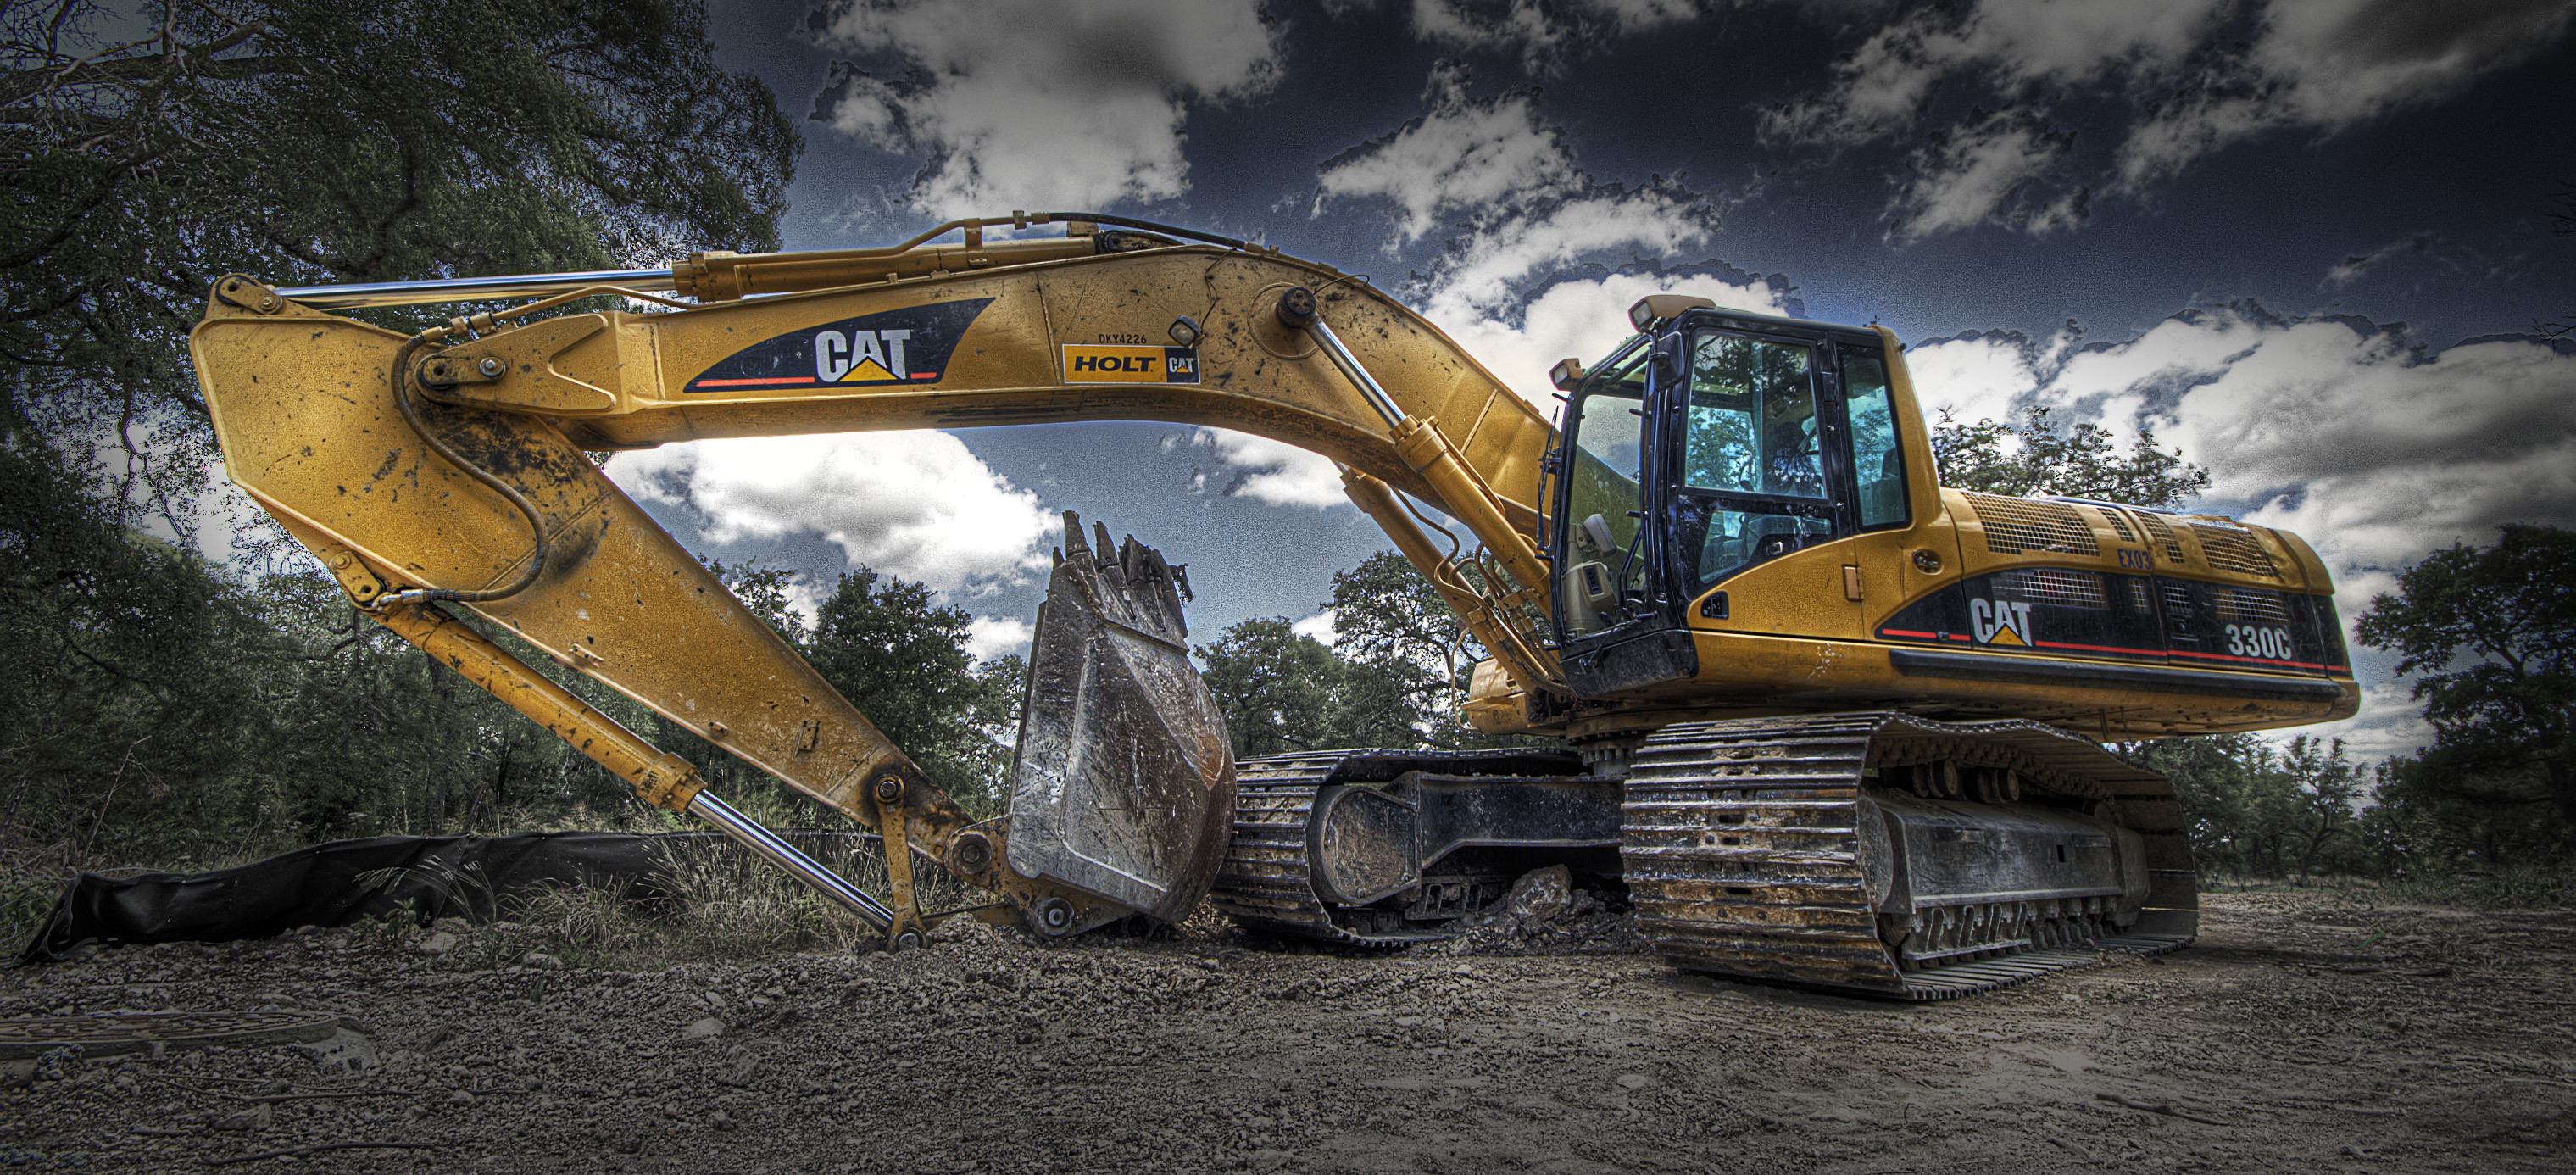 3039x1386 Excavator HD Wallpaper | Full HD Pictures